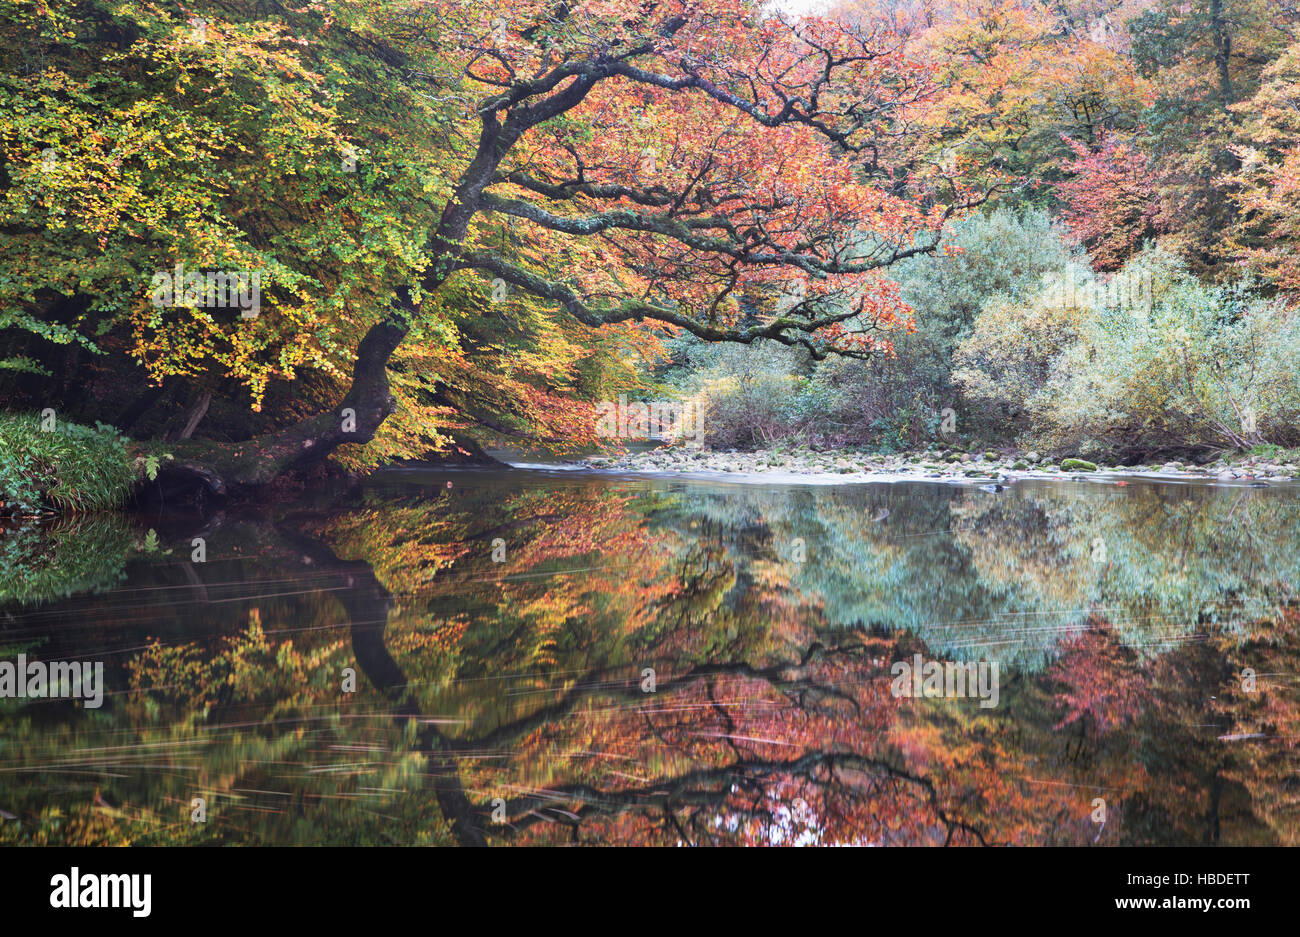 The River Dart passing through Hembury Wood in Devon, UK, with autumn colours on the trees - Stock Image